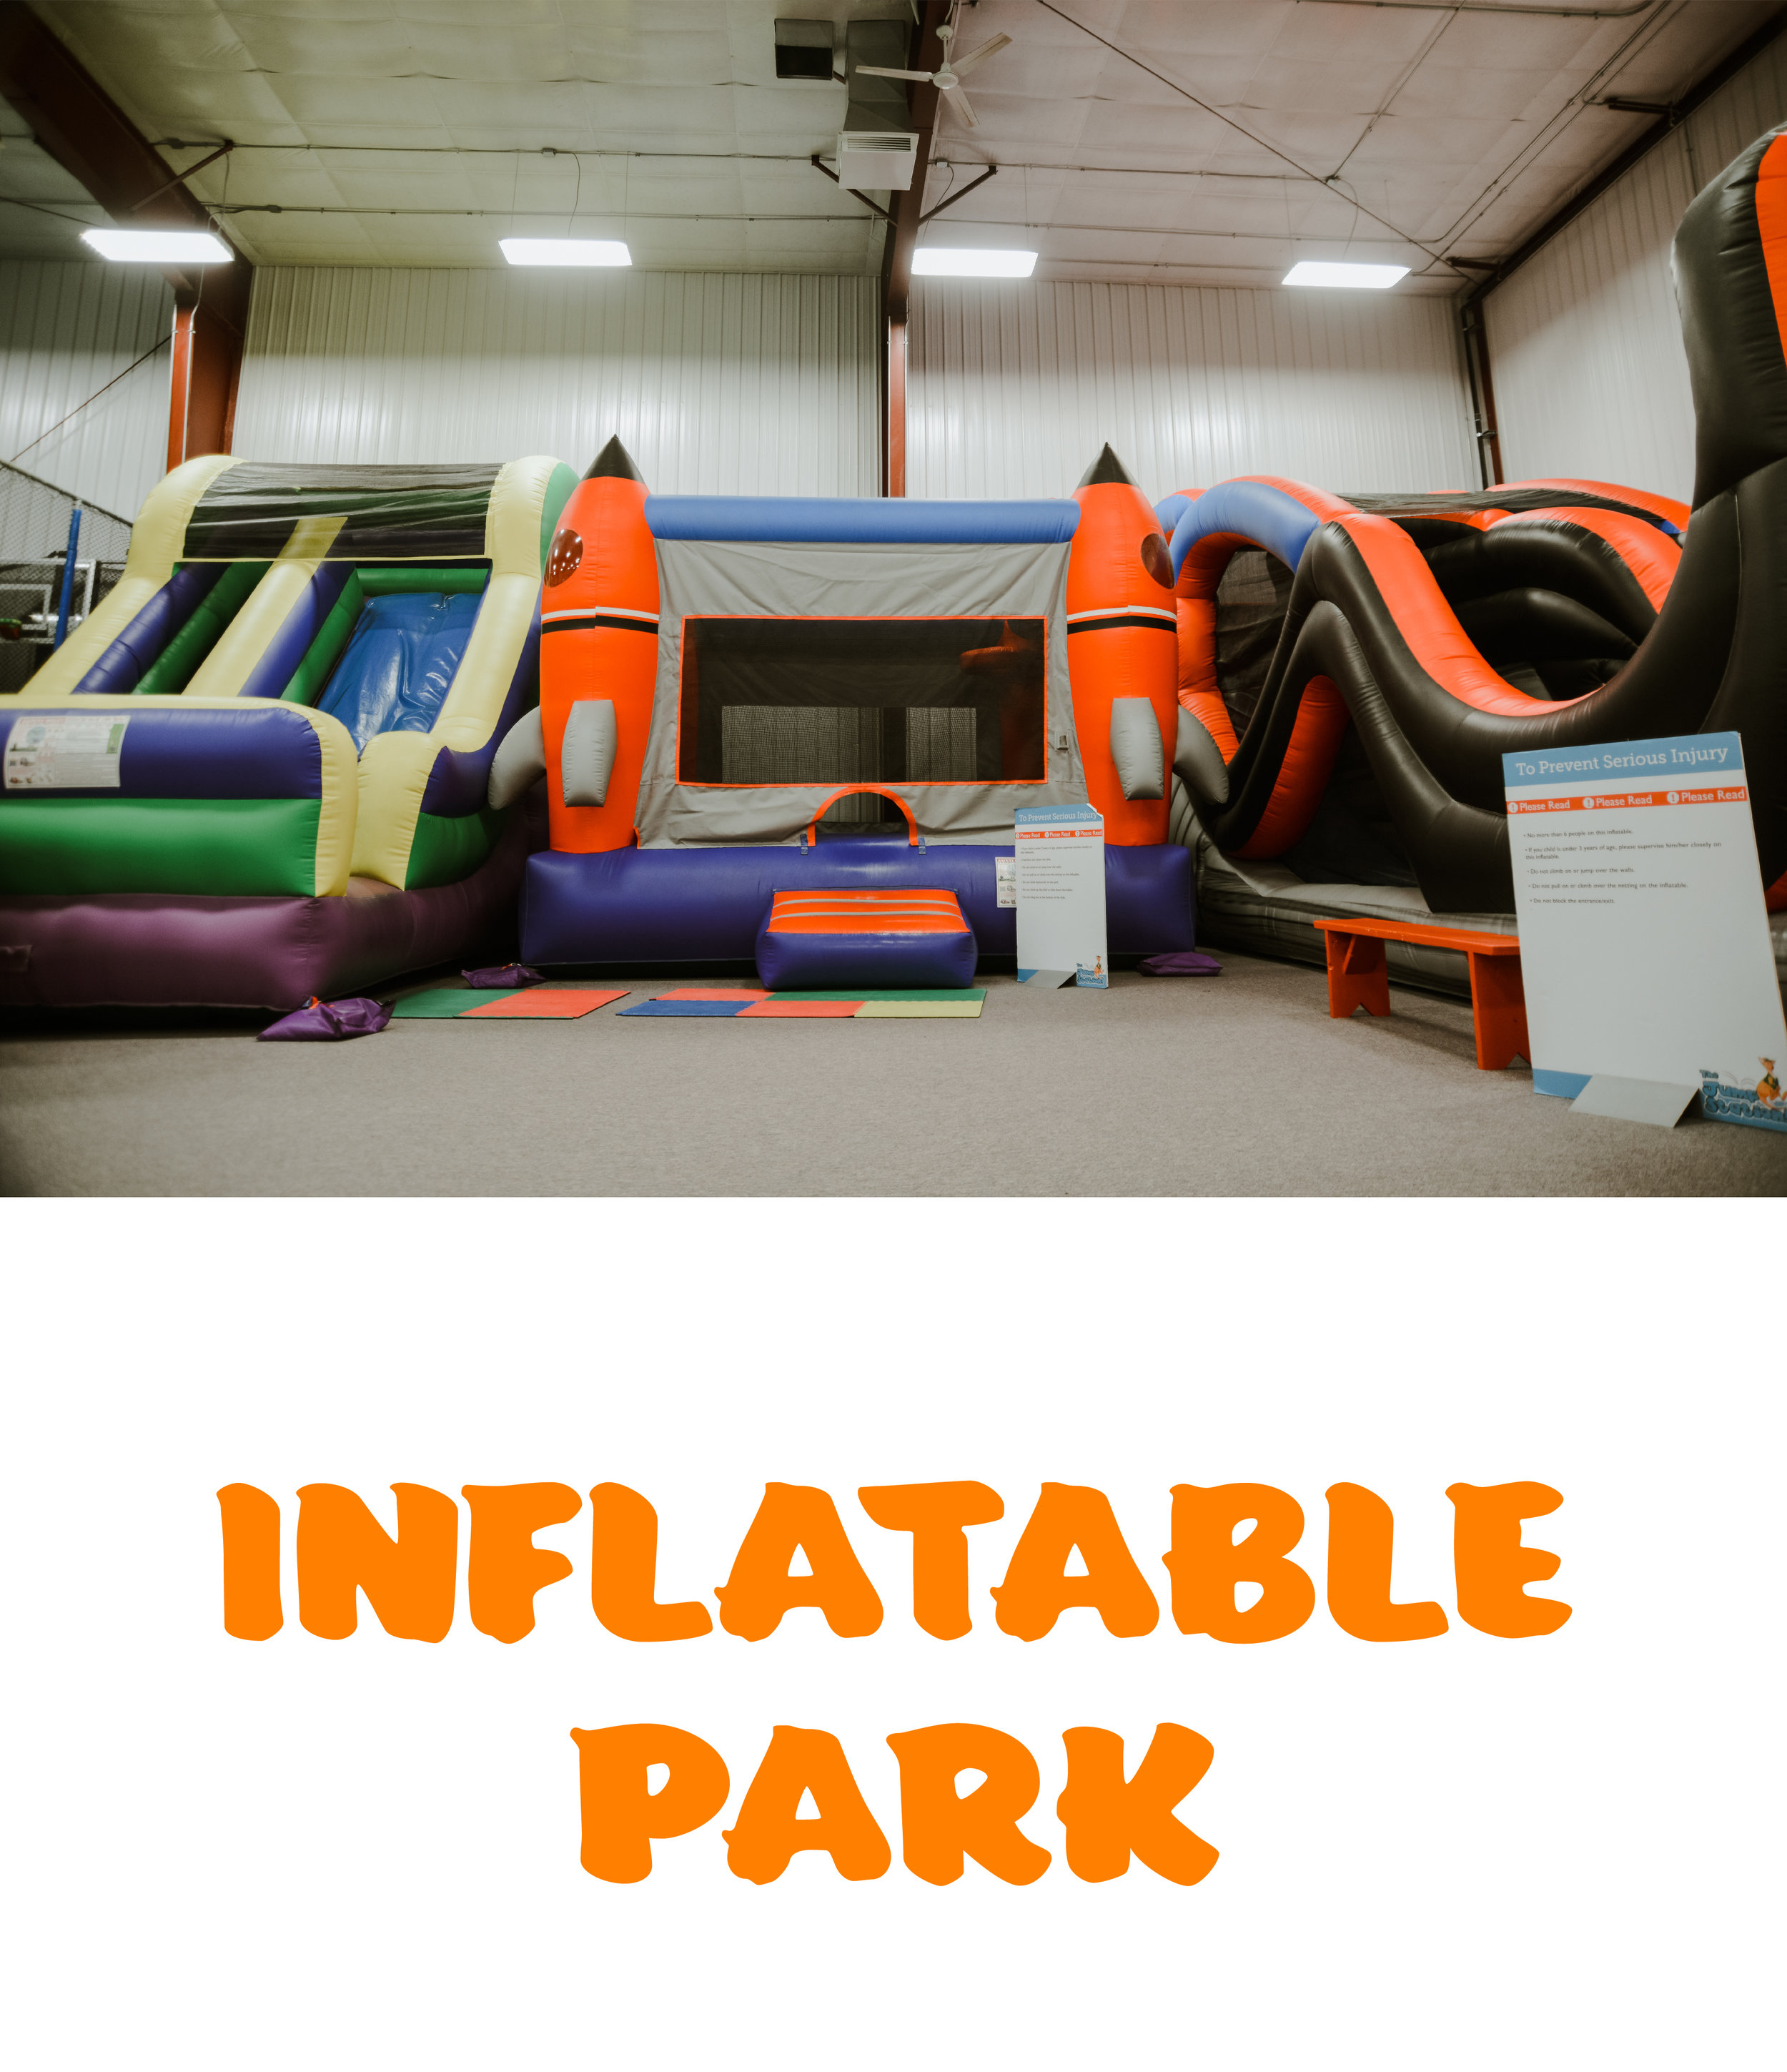 Inflatable Park Prices.jpg